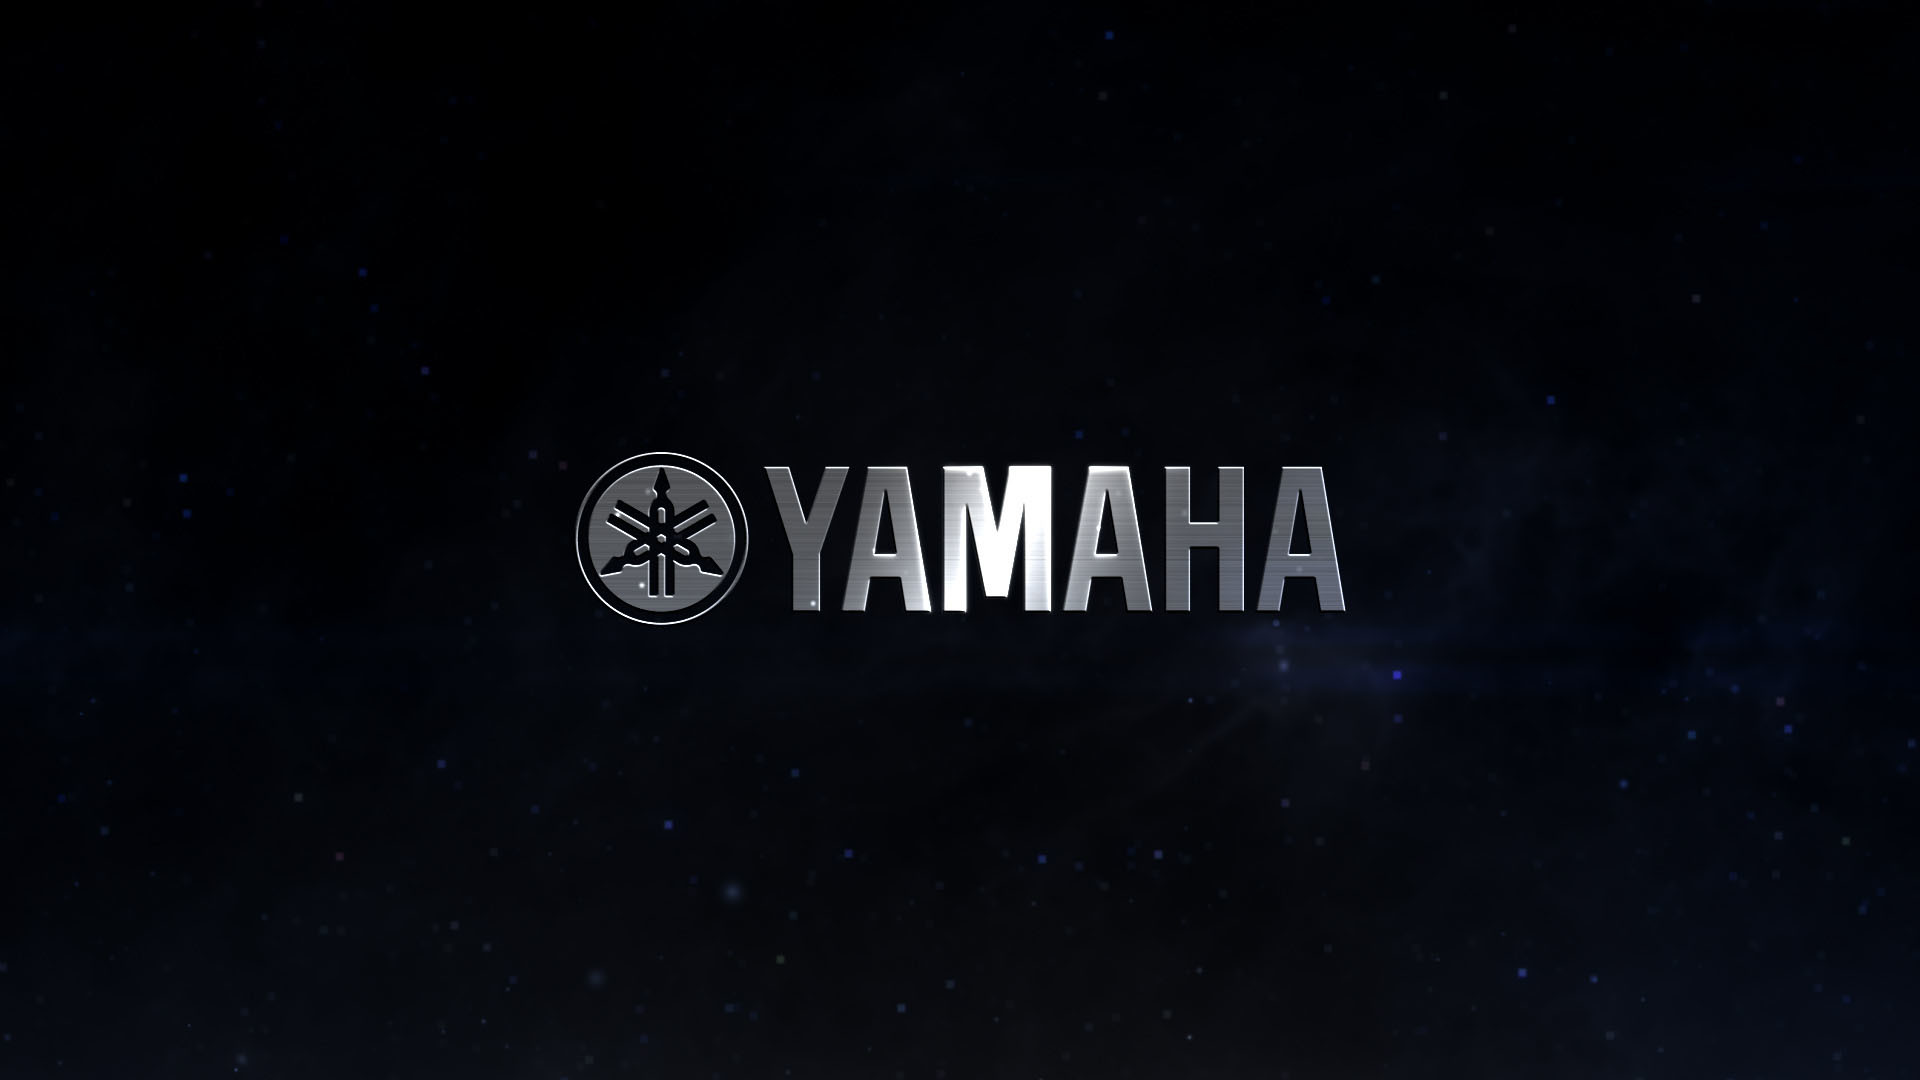 Yamaha logo wallpaper 61 images for Fond ecran r6